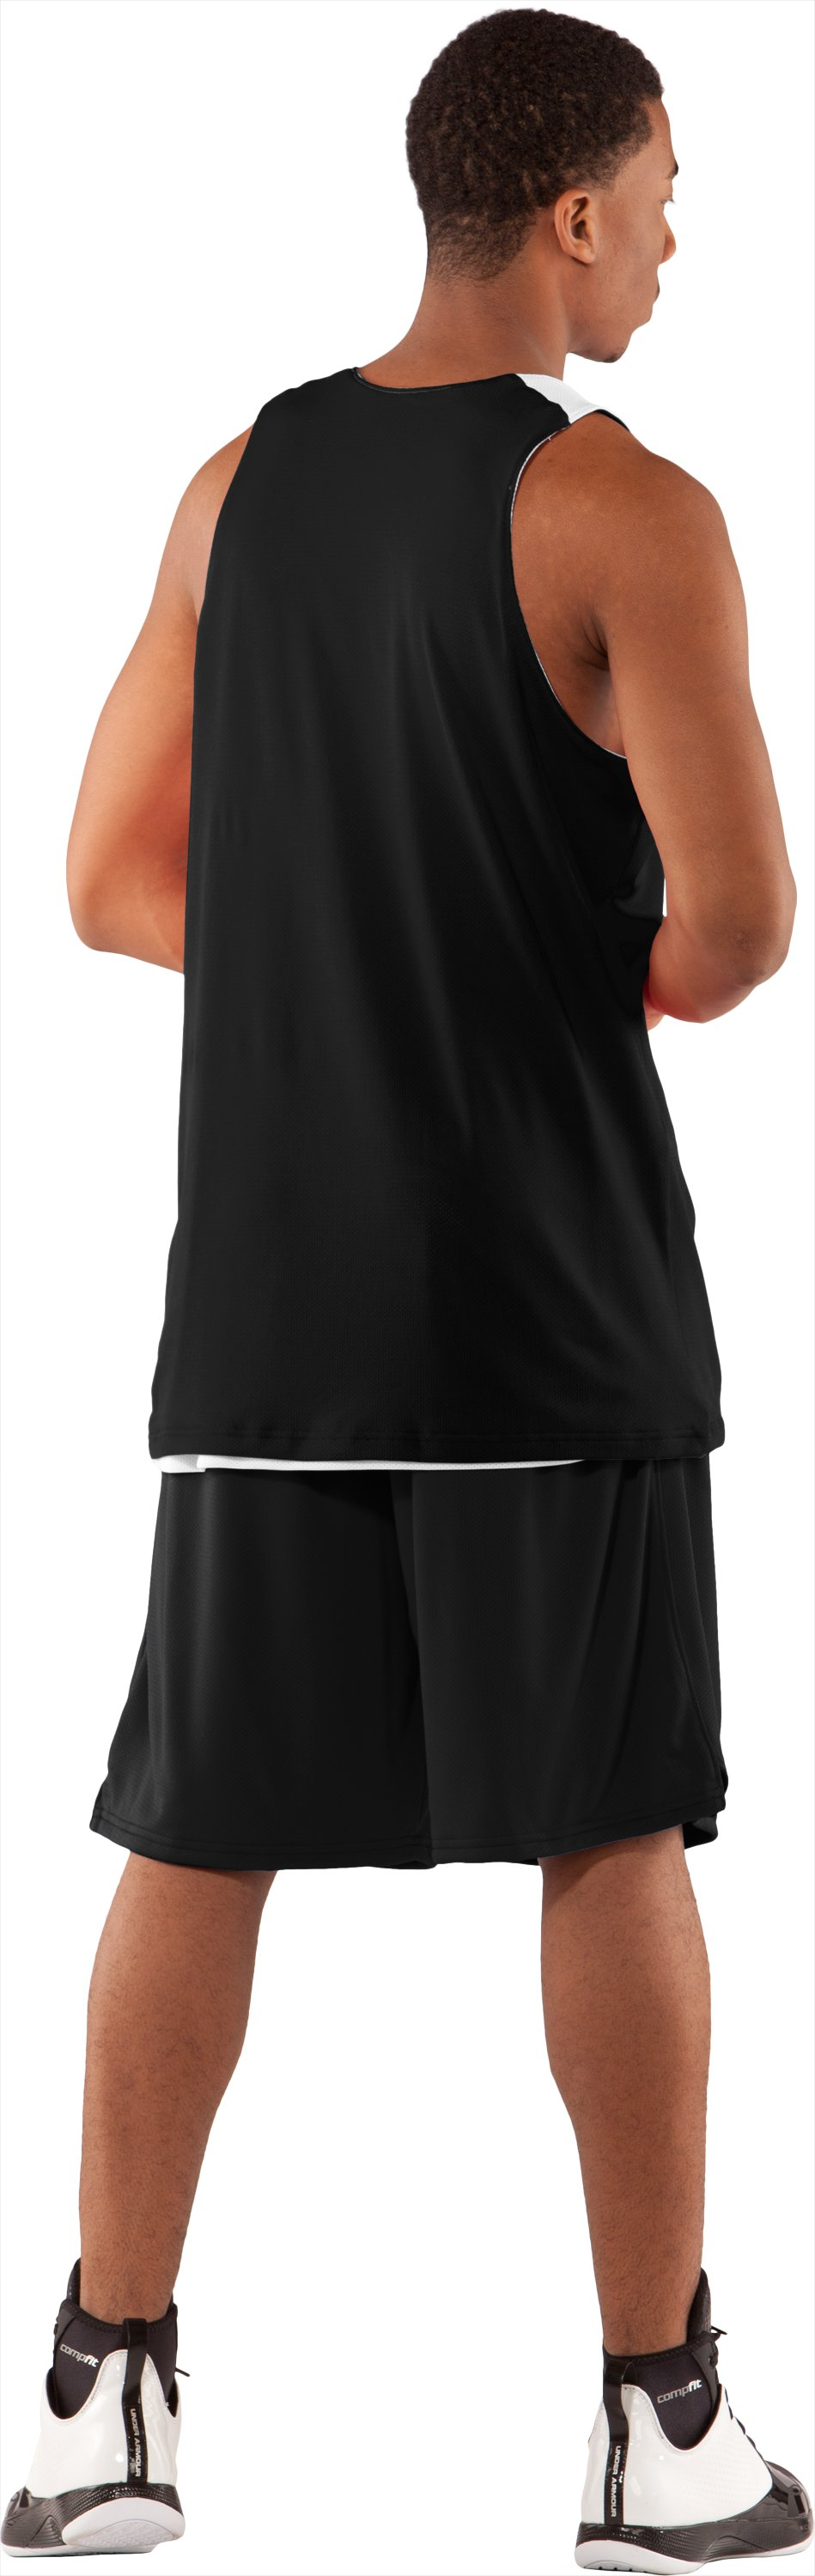 Men's Repeat Reversible Basketball Jersey, Black , Back